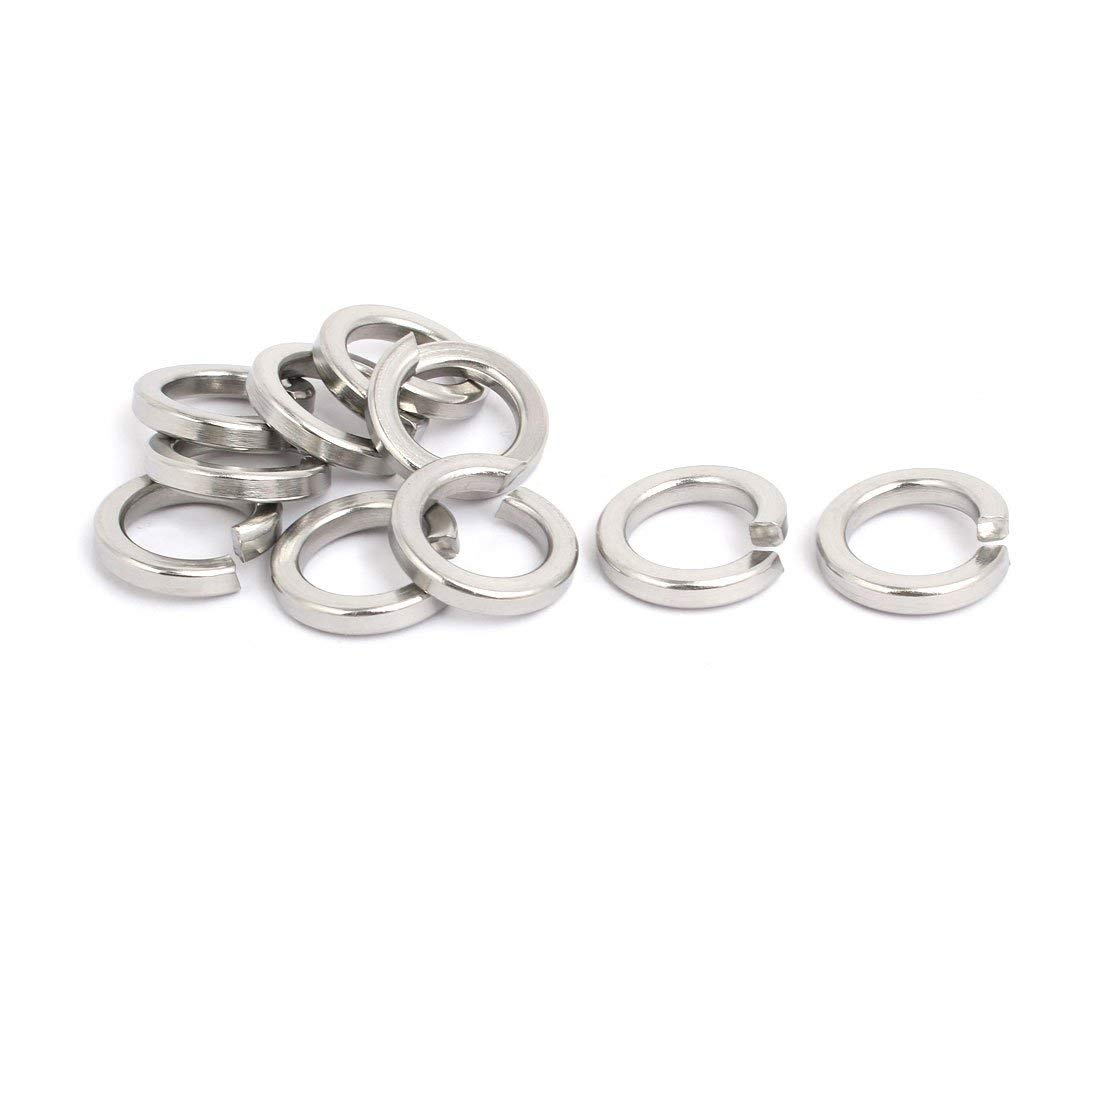 uxcell M14 Inner Diameter 304 Stainless Steel Split Lock Spring Washer Gasket 10pcs